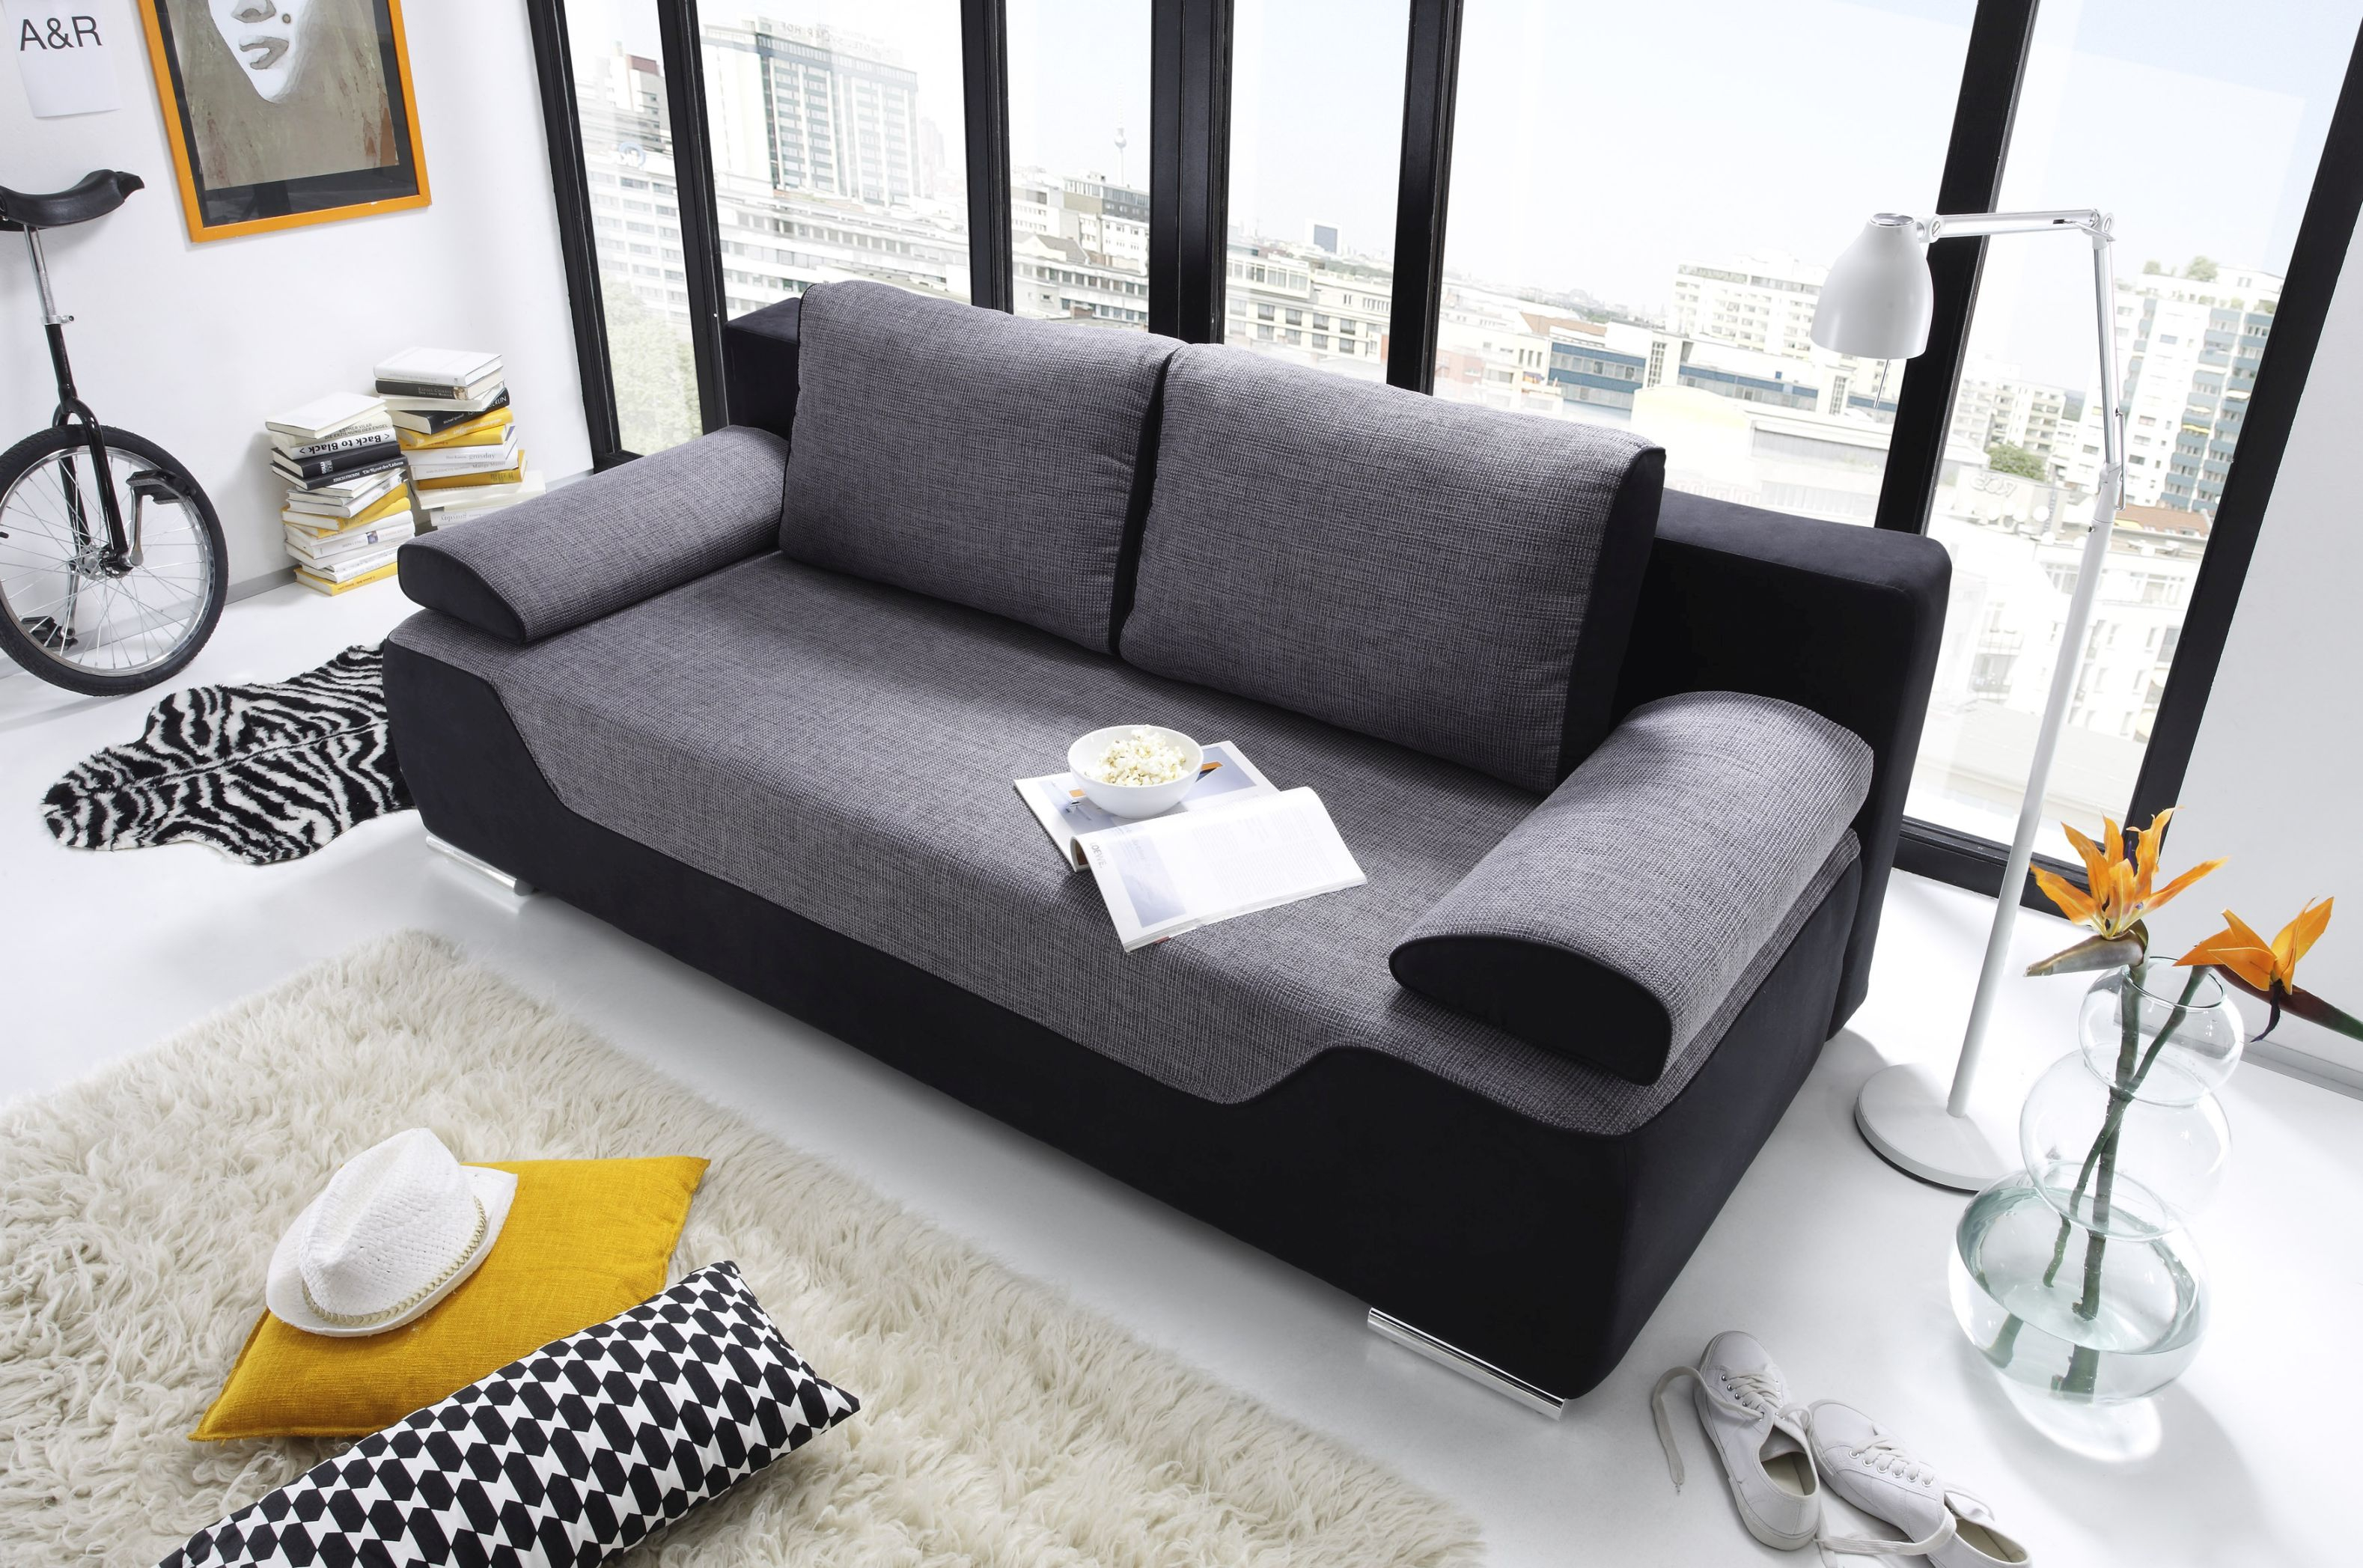 couch schlafsofa sofabett funktionssofa ausziehbar schwarz 200 cm 4250826313860 ebay. Black Bedroom Furniture Sets. Home Design Ideas